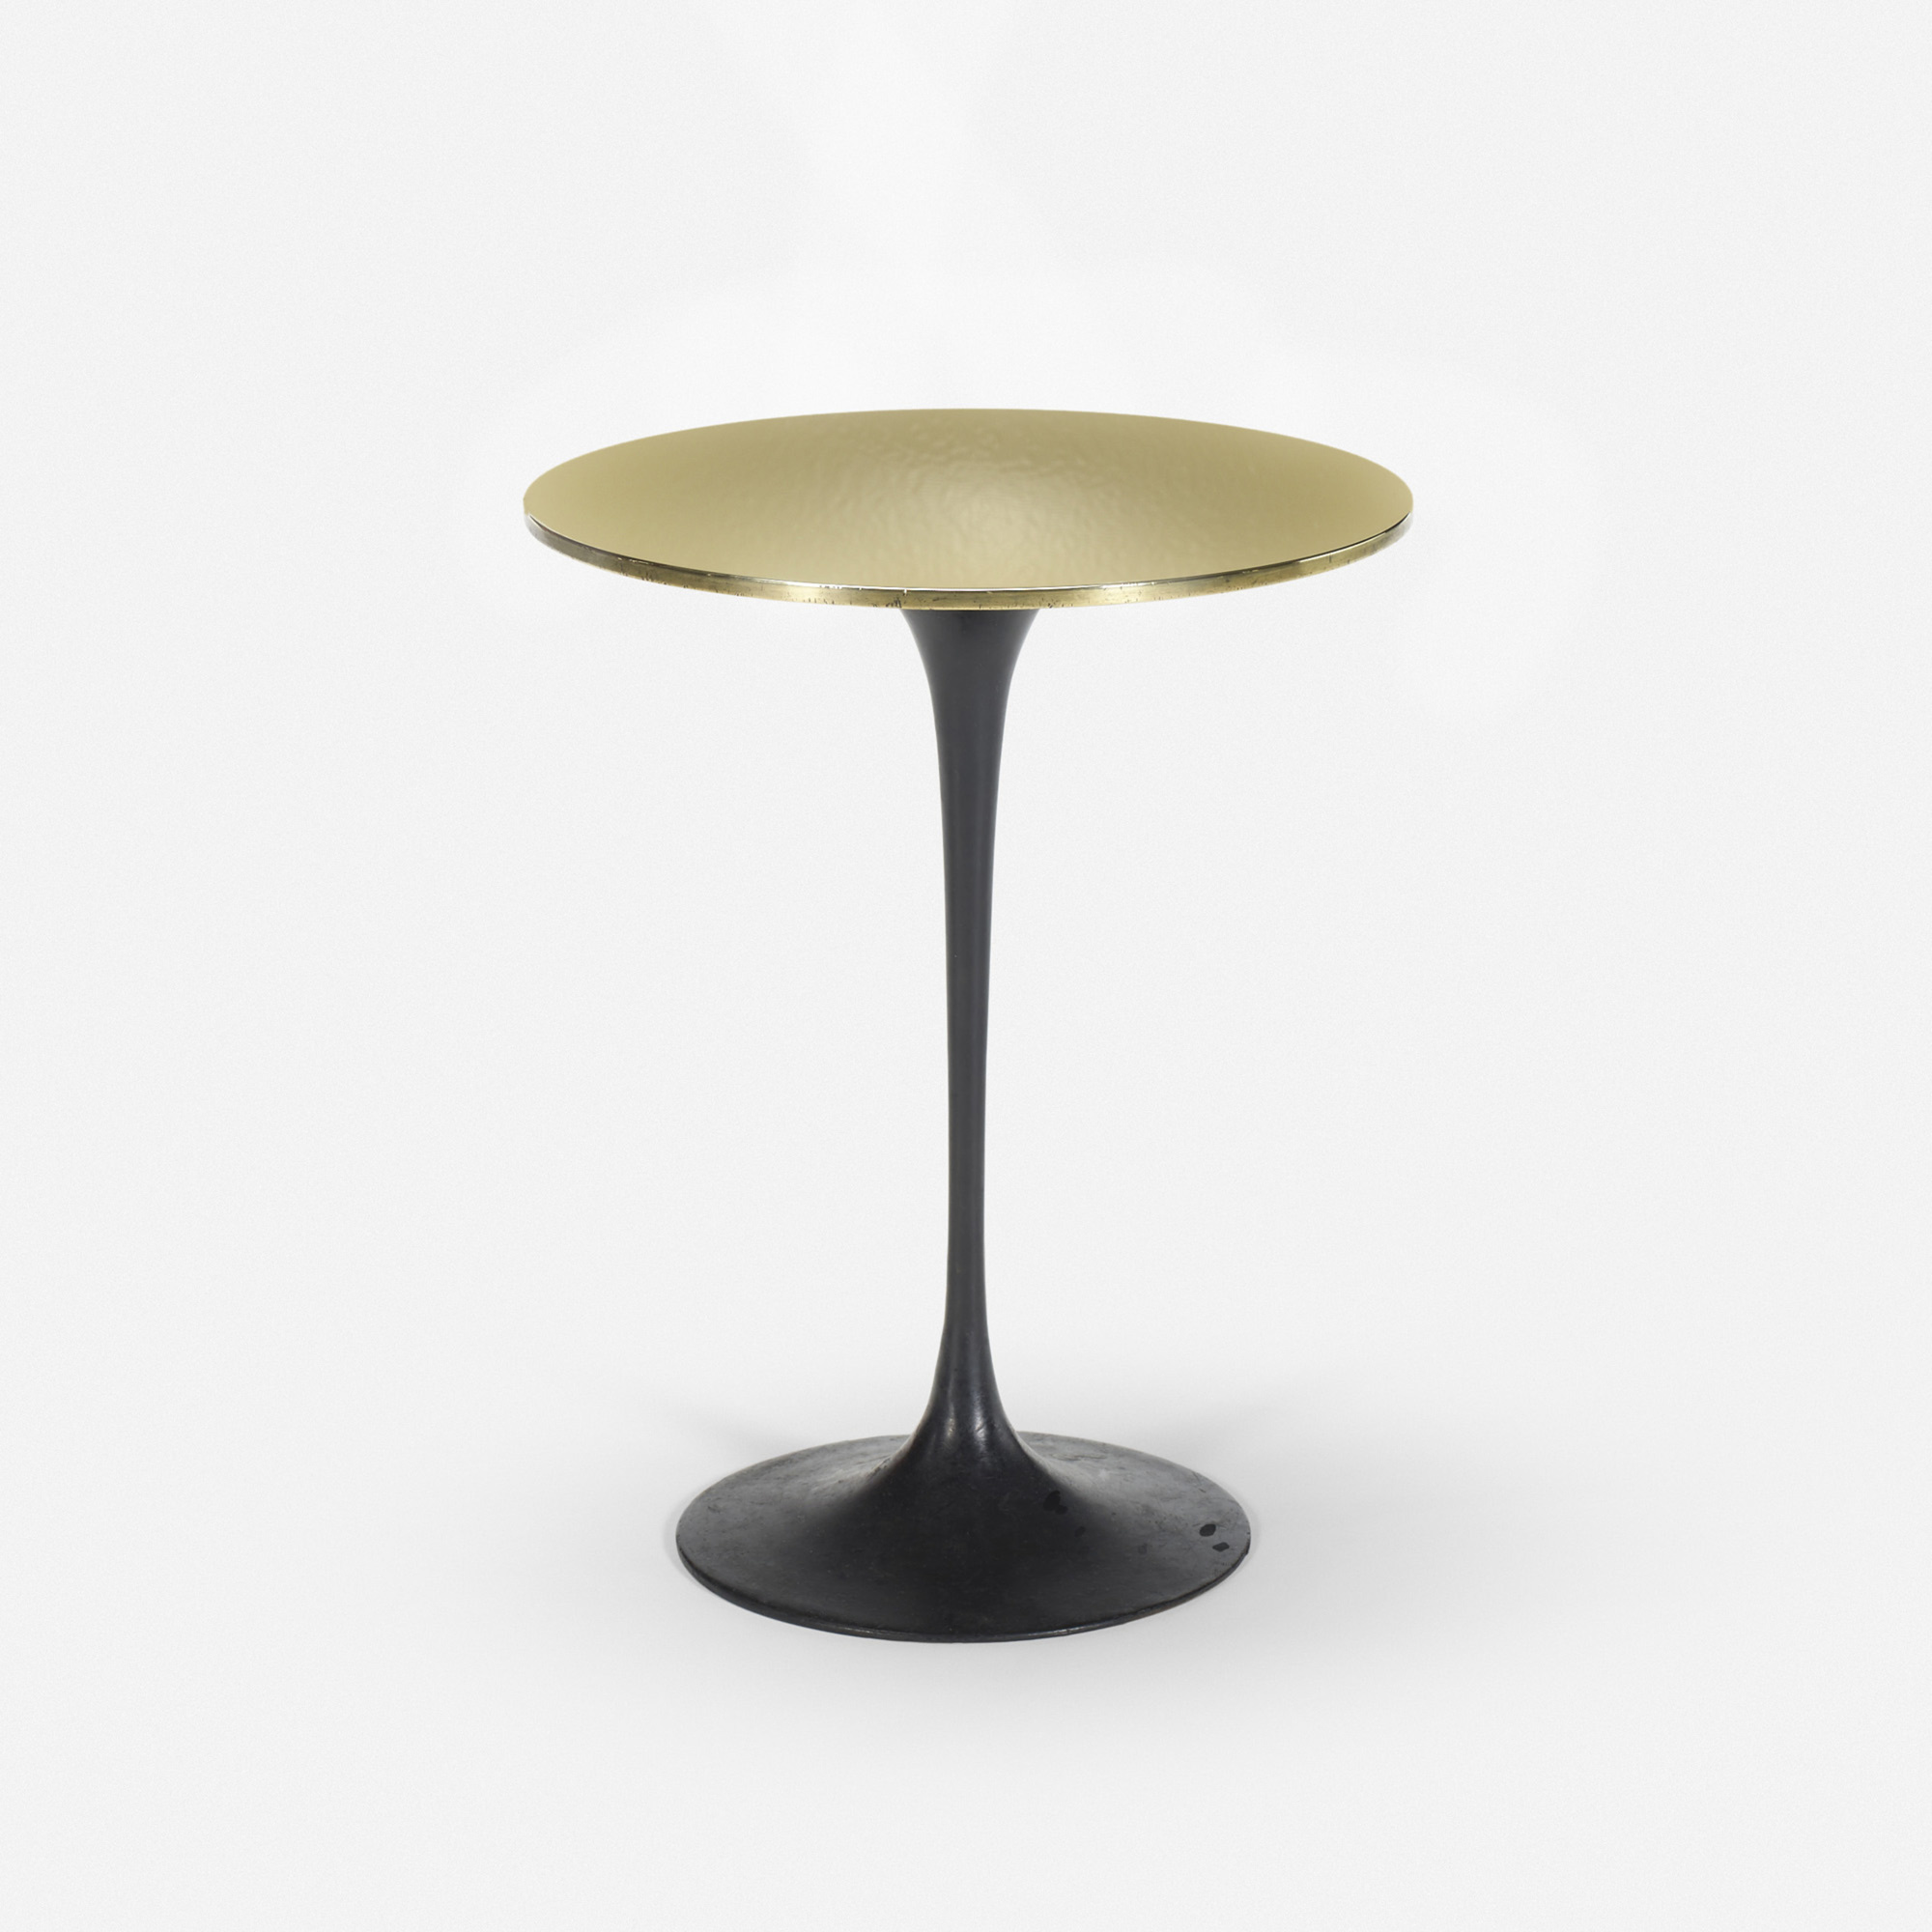 134: Eero Saarinen / Custom Tulip table from the bar of the Grill Room (1 of 1)